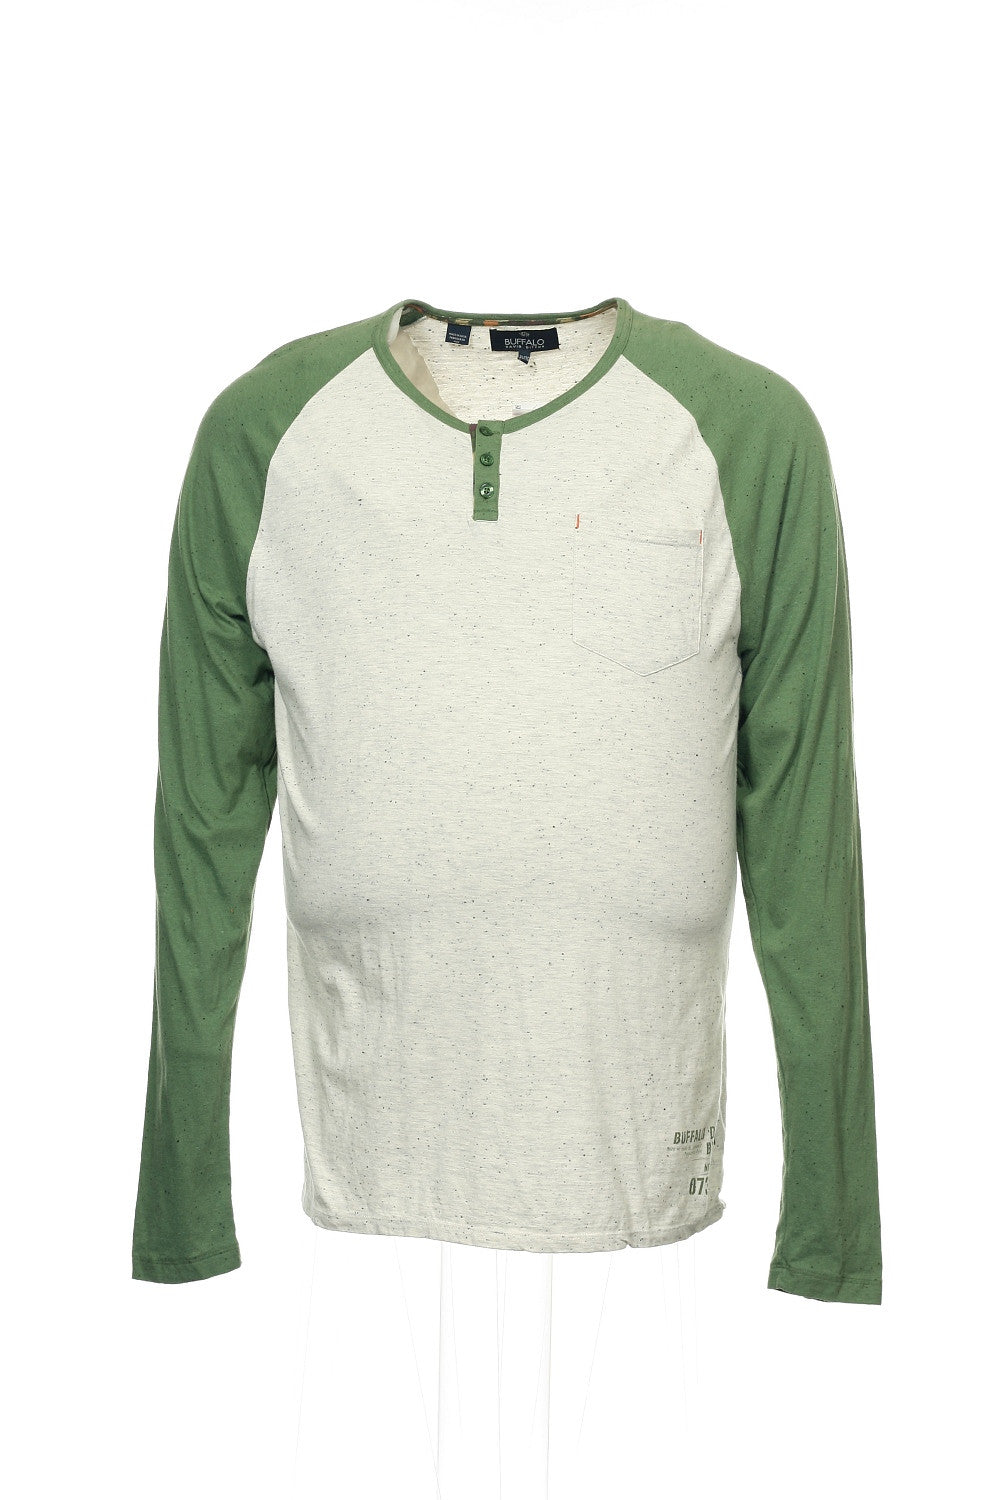 Buffalo by David Bitton Mens Olive Green Heather Pullover Shirt